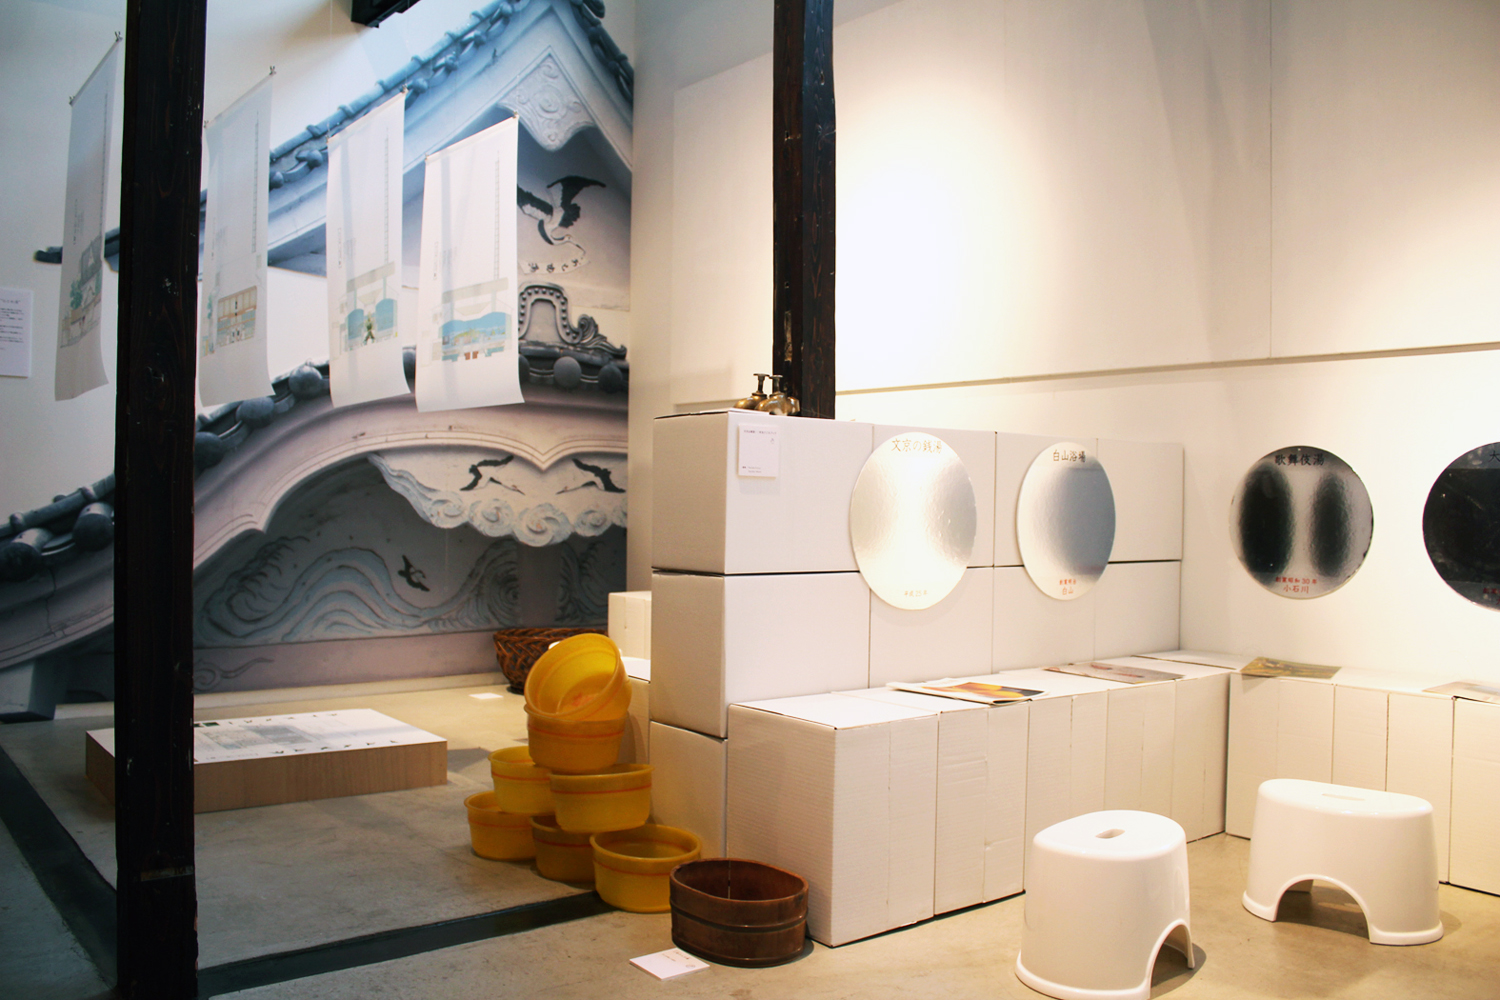 Sento (Public Bath) Exhibition